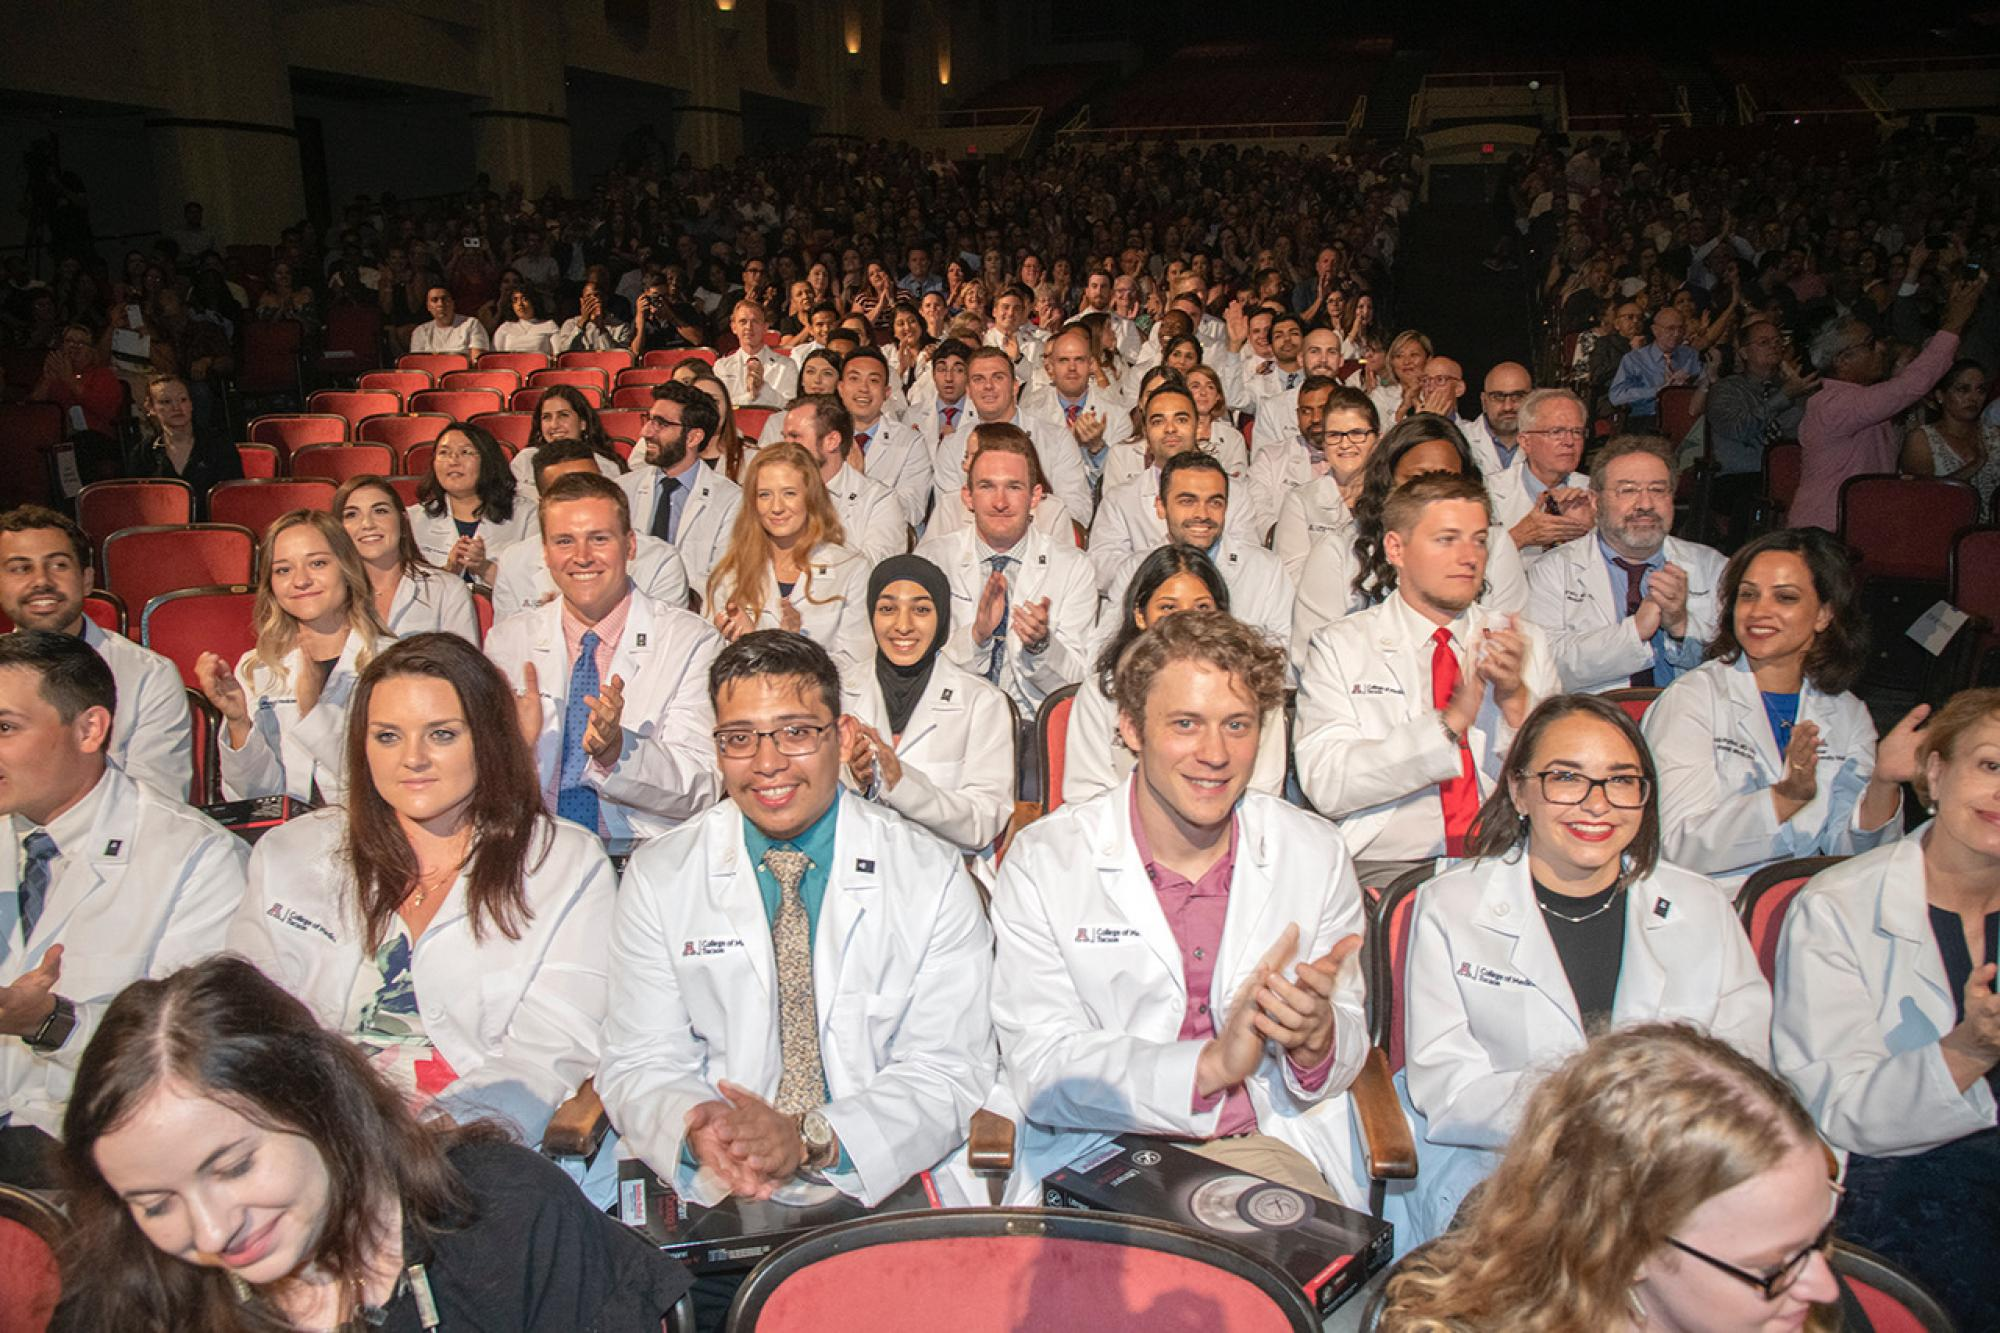 A large crowd filled Centennial Hall on July 26, as the Class of 2023 received their first white coats, signifying their acceptance into the College of Medicine – Tucson.